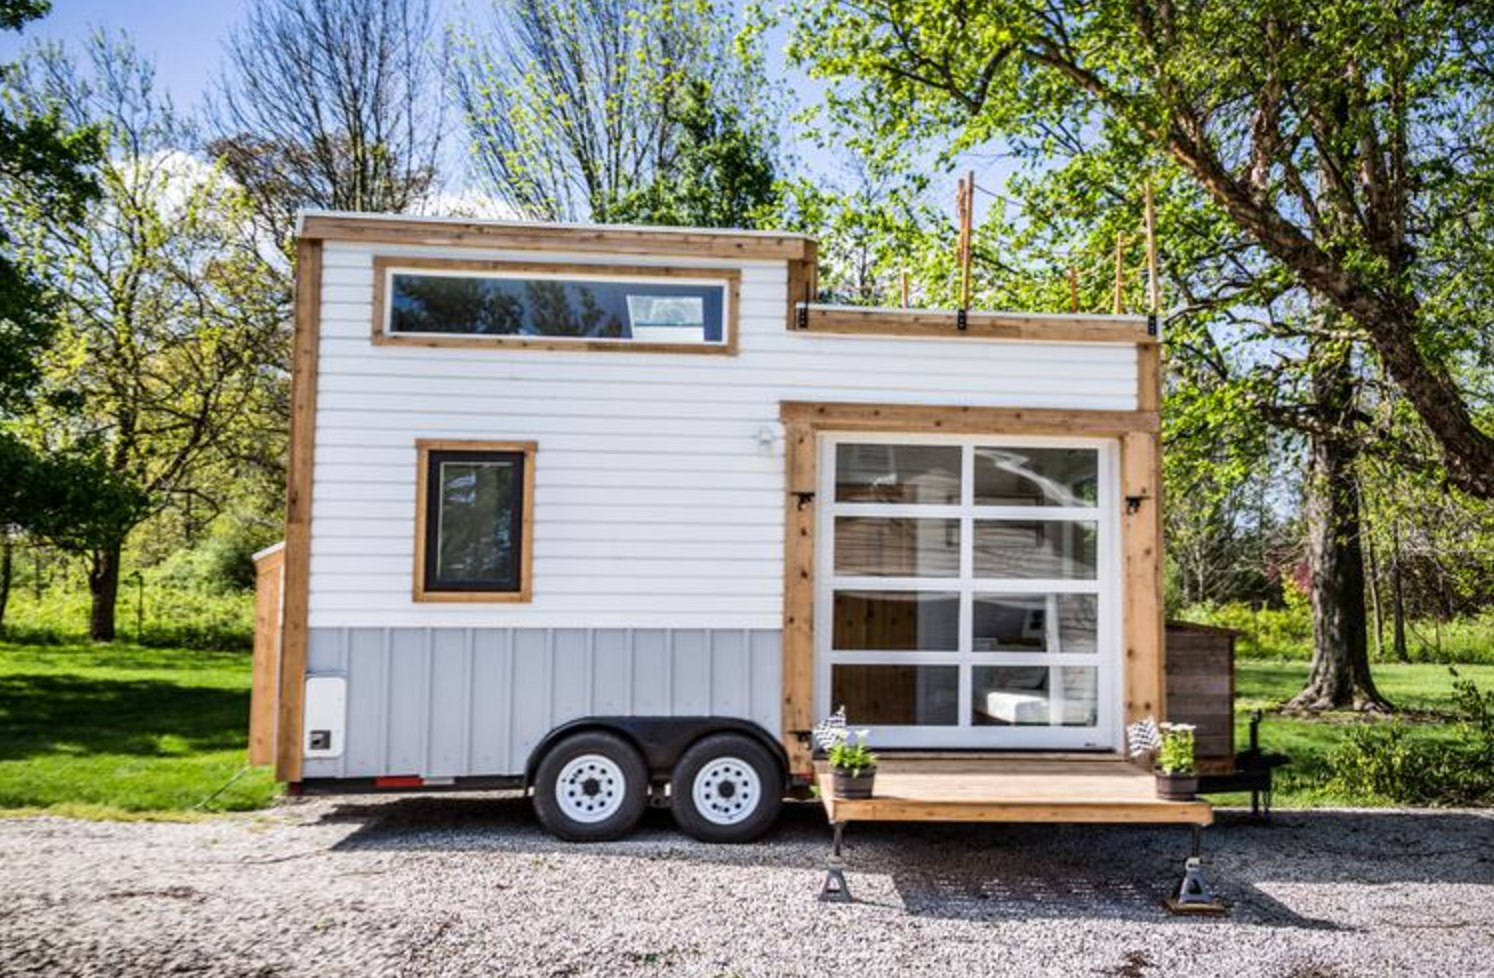 Tiny House Listings Tiny Houses For Sale And Rent Tiny House 200 Sq Ft Tiny House Swoon Tiny Houses For Sale